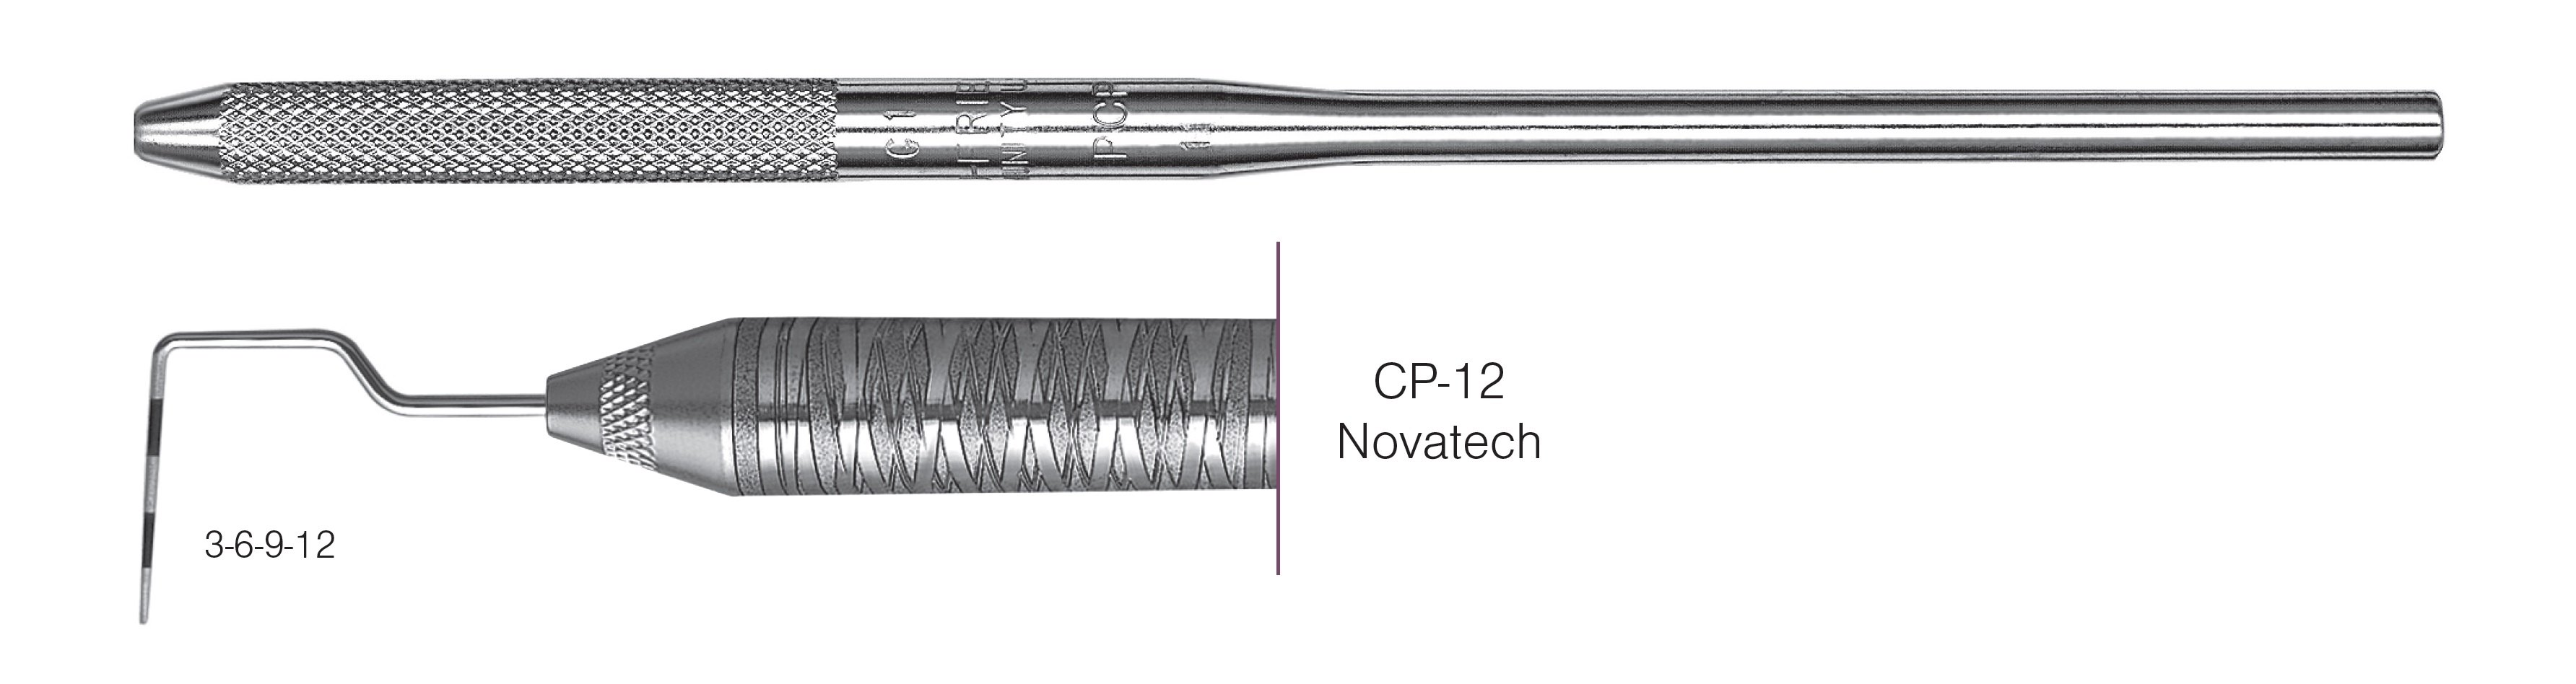 HF-PCPNT26-30, Novatech Screening Probe* CP-12, Black markings, 3-6-9-12 mm, Handle round, Single End